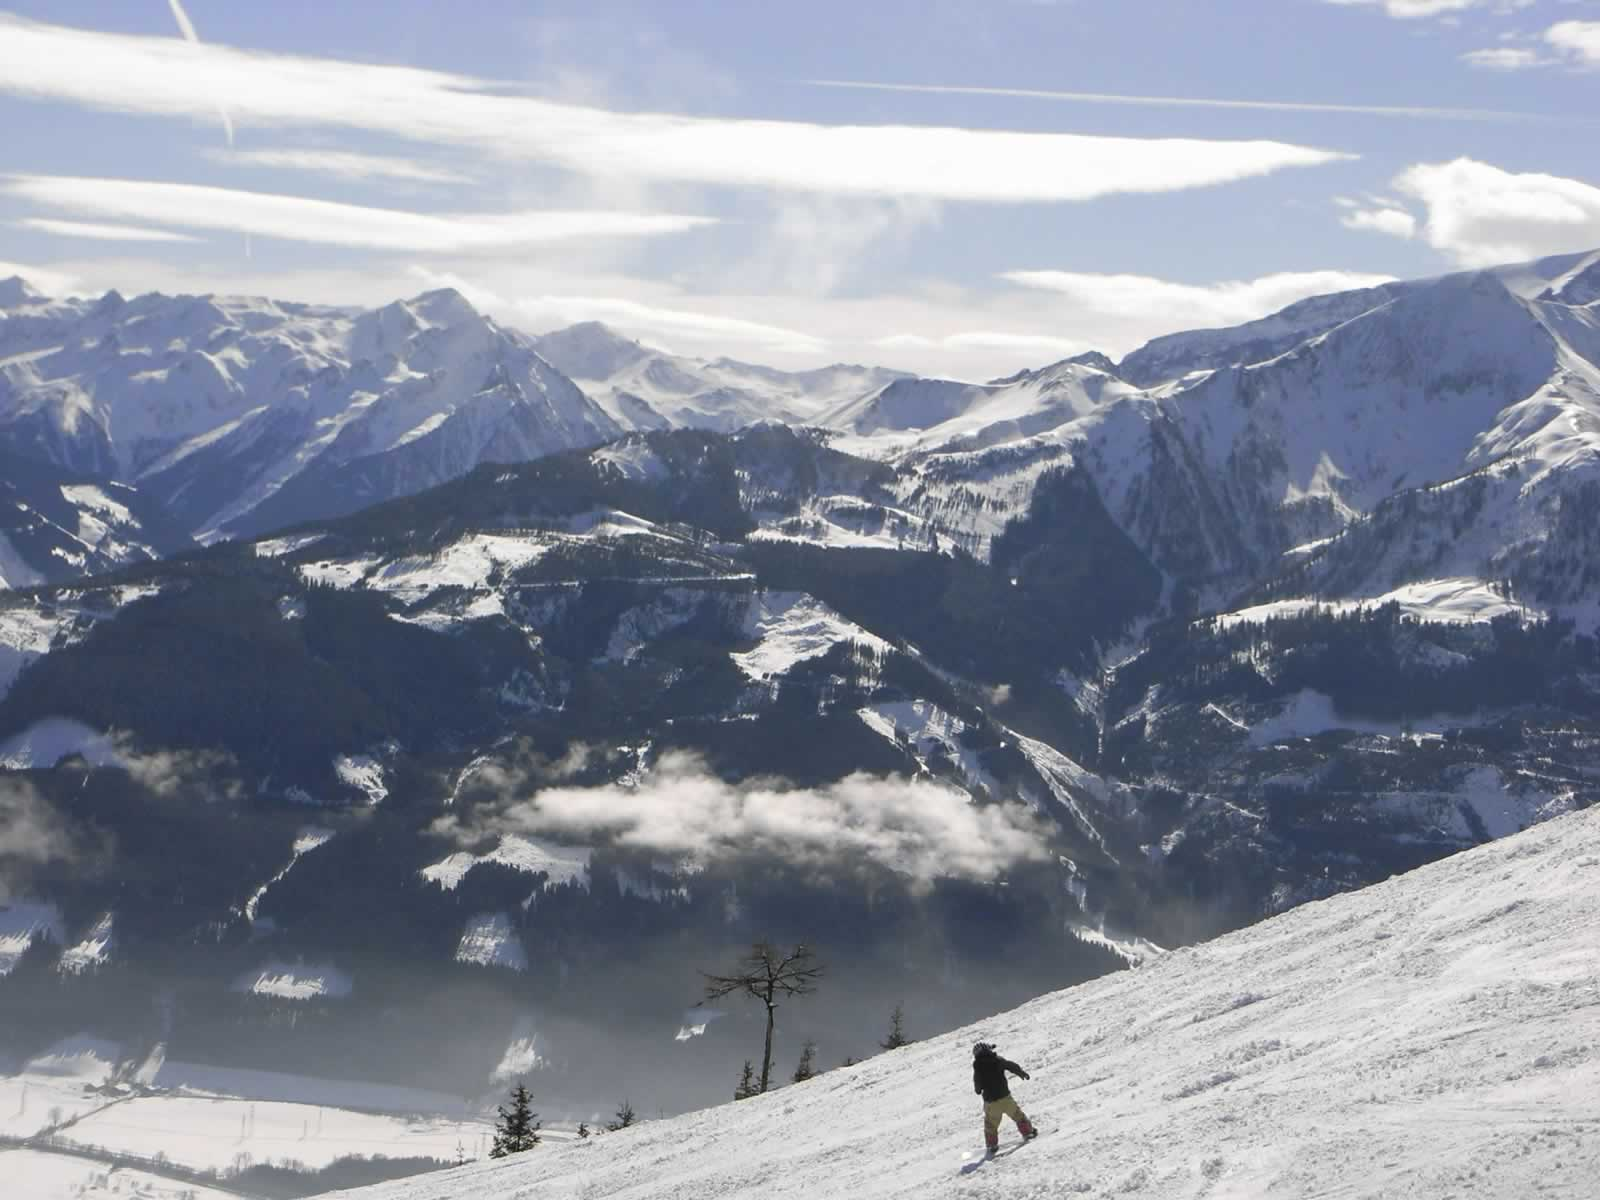 Zellamsee Snowy Mountains And Snowboarder